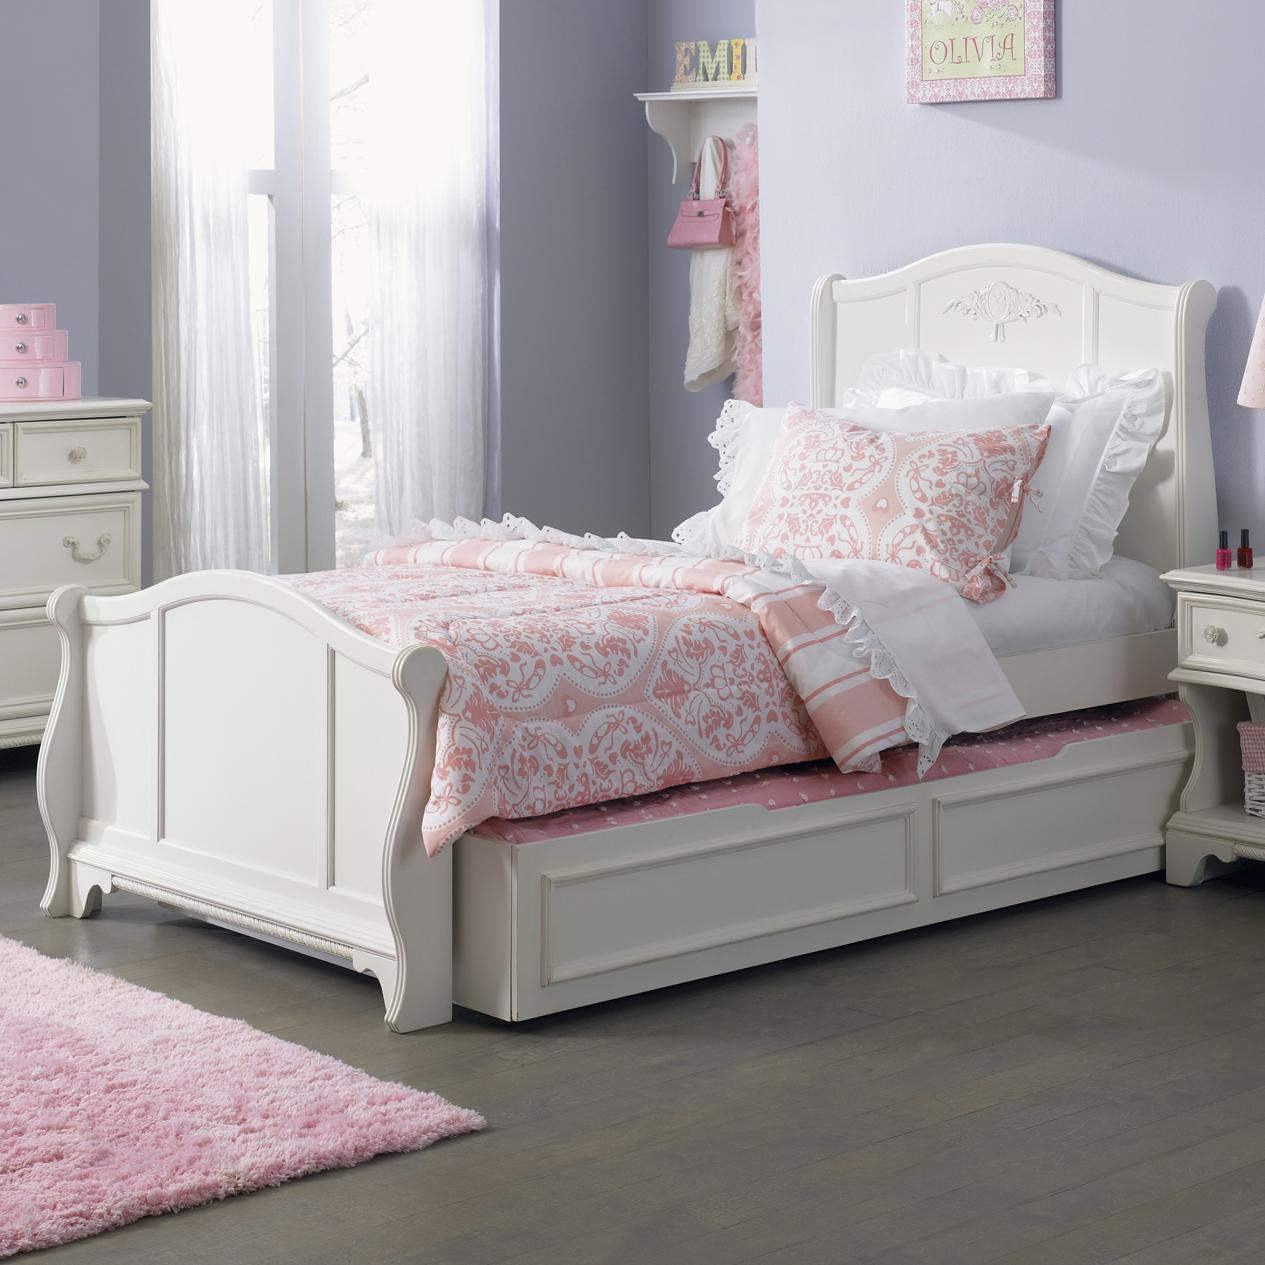 Liberty Furniture Arielle Youth Bedroom Twin Sleigh Bed - Item Number: 352-YBR-SET90